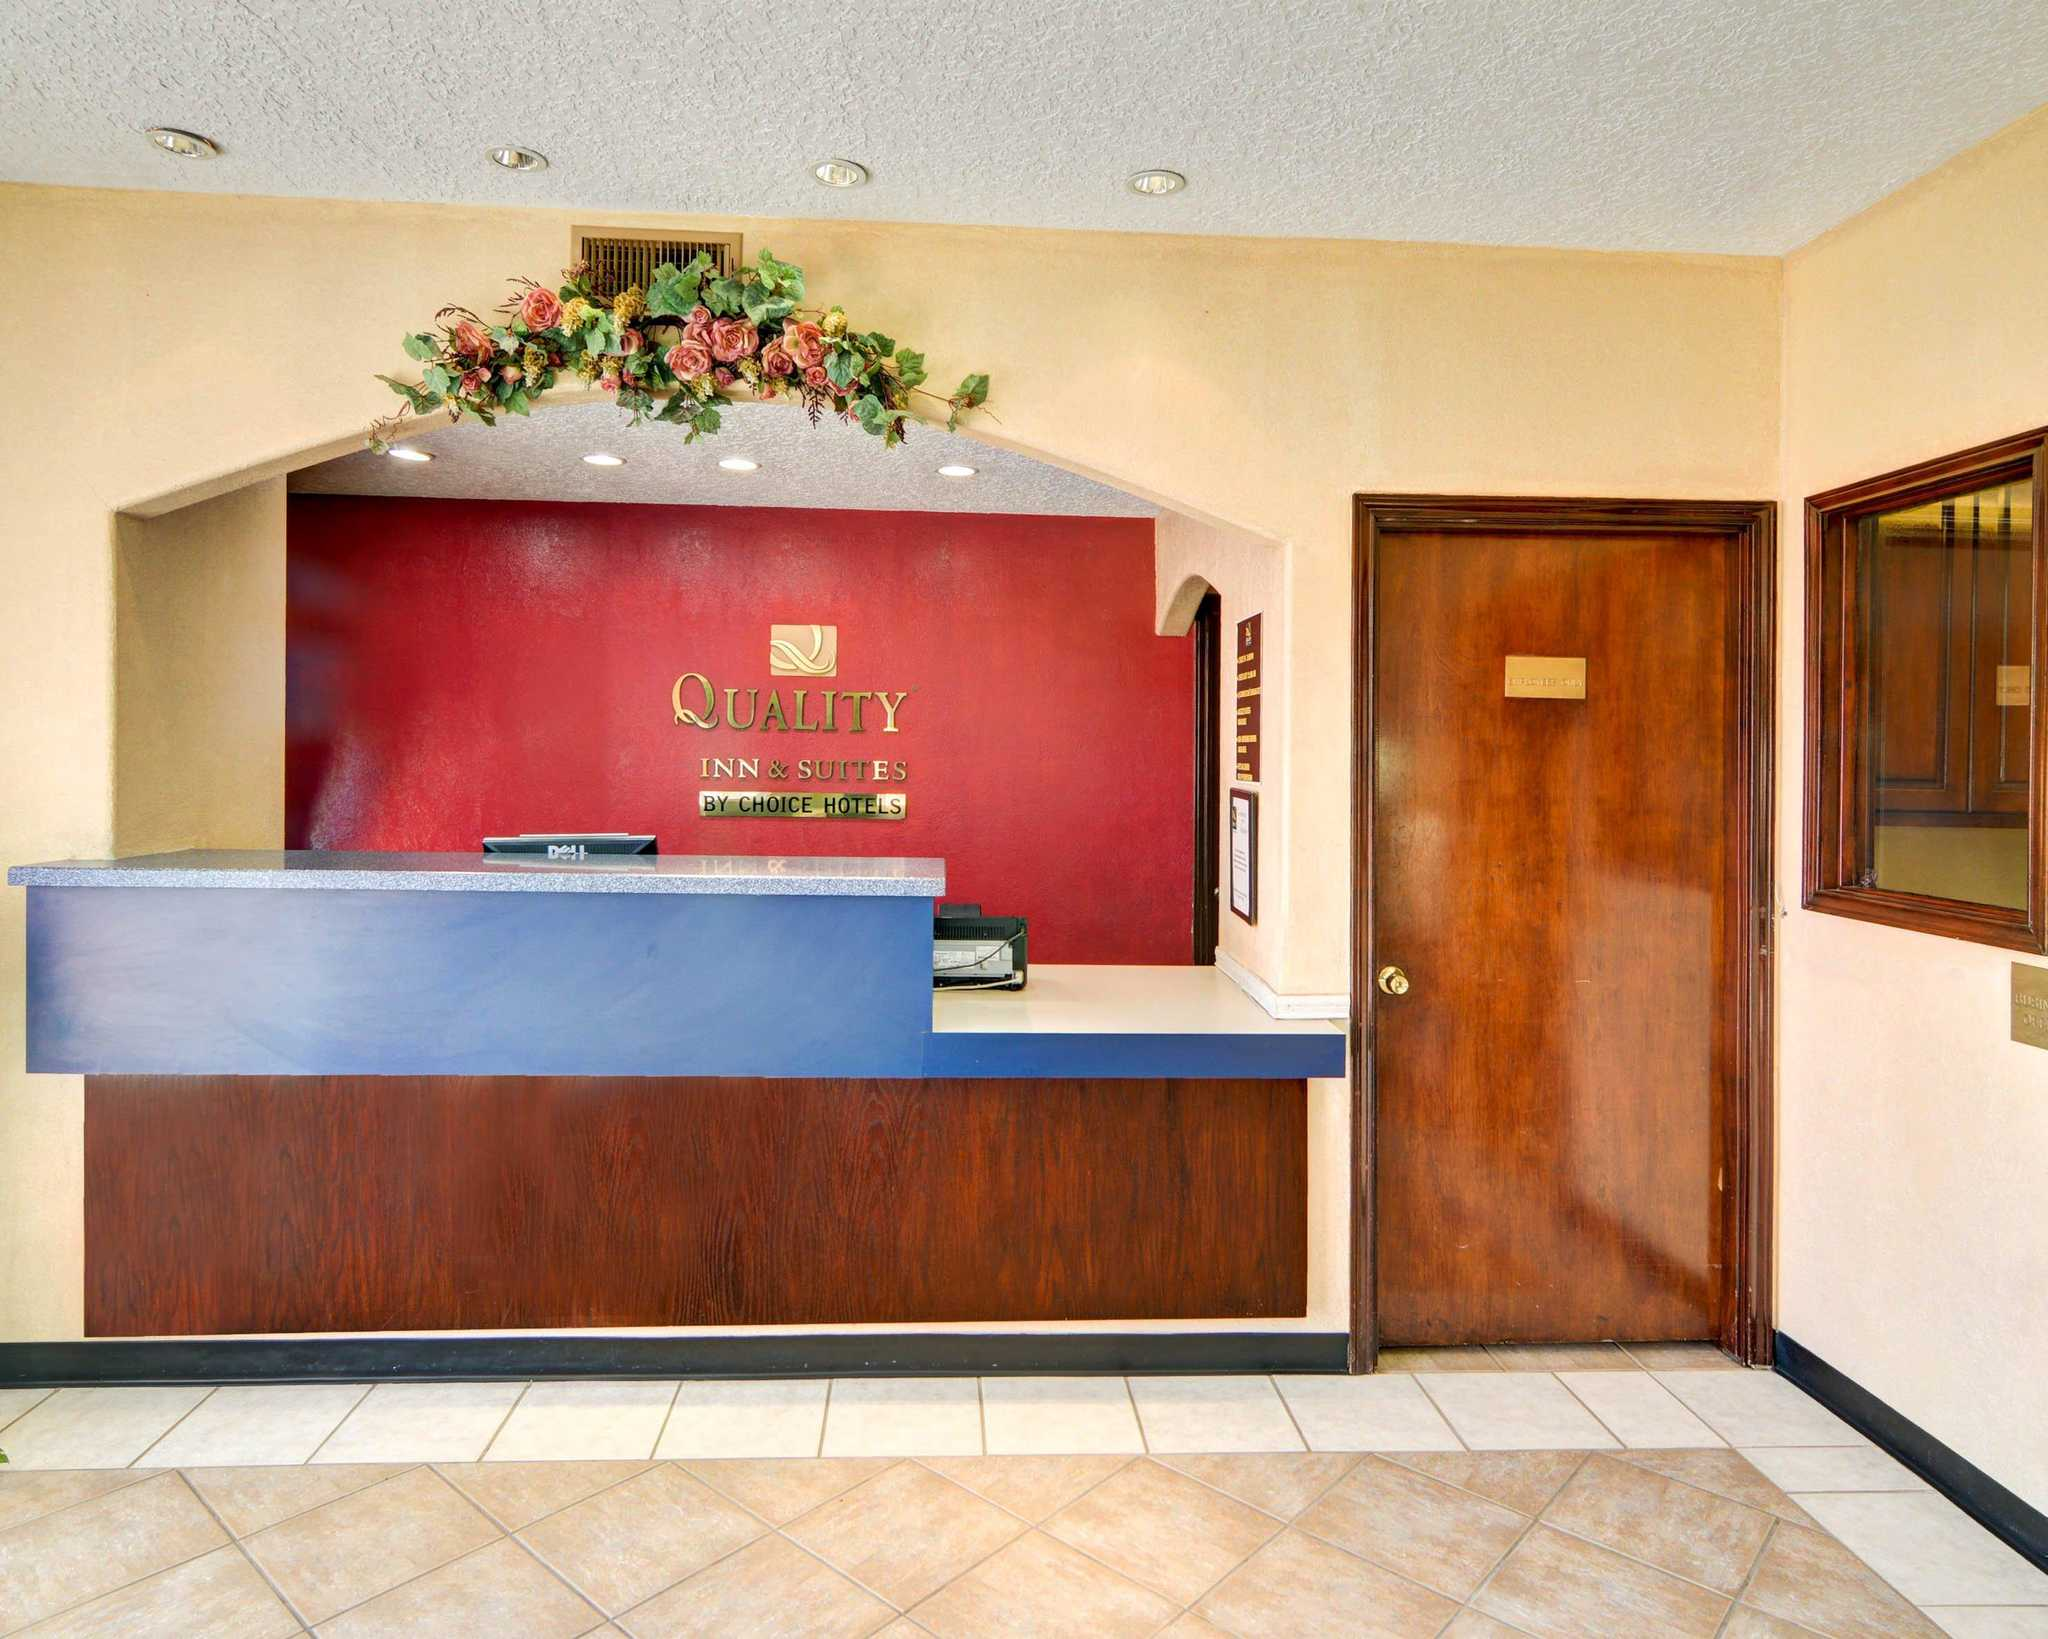 Quality Inn & Suites Canton image 12